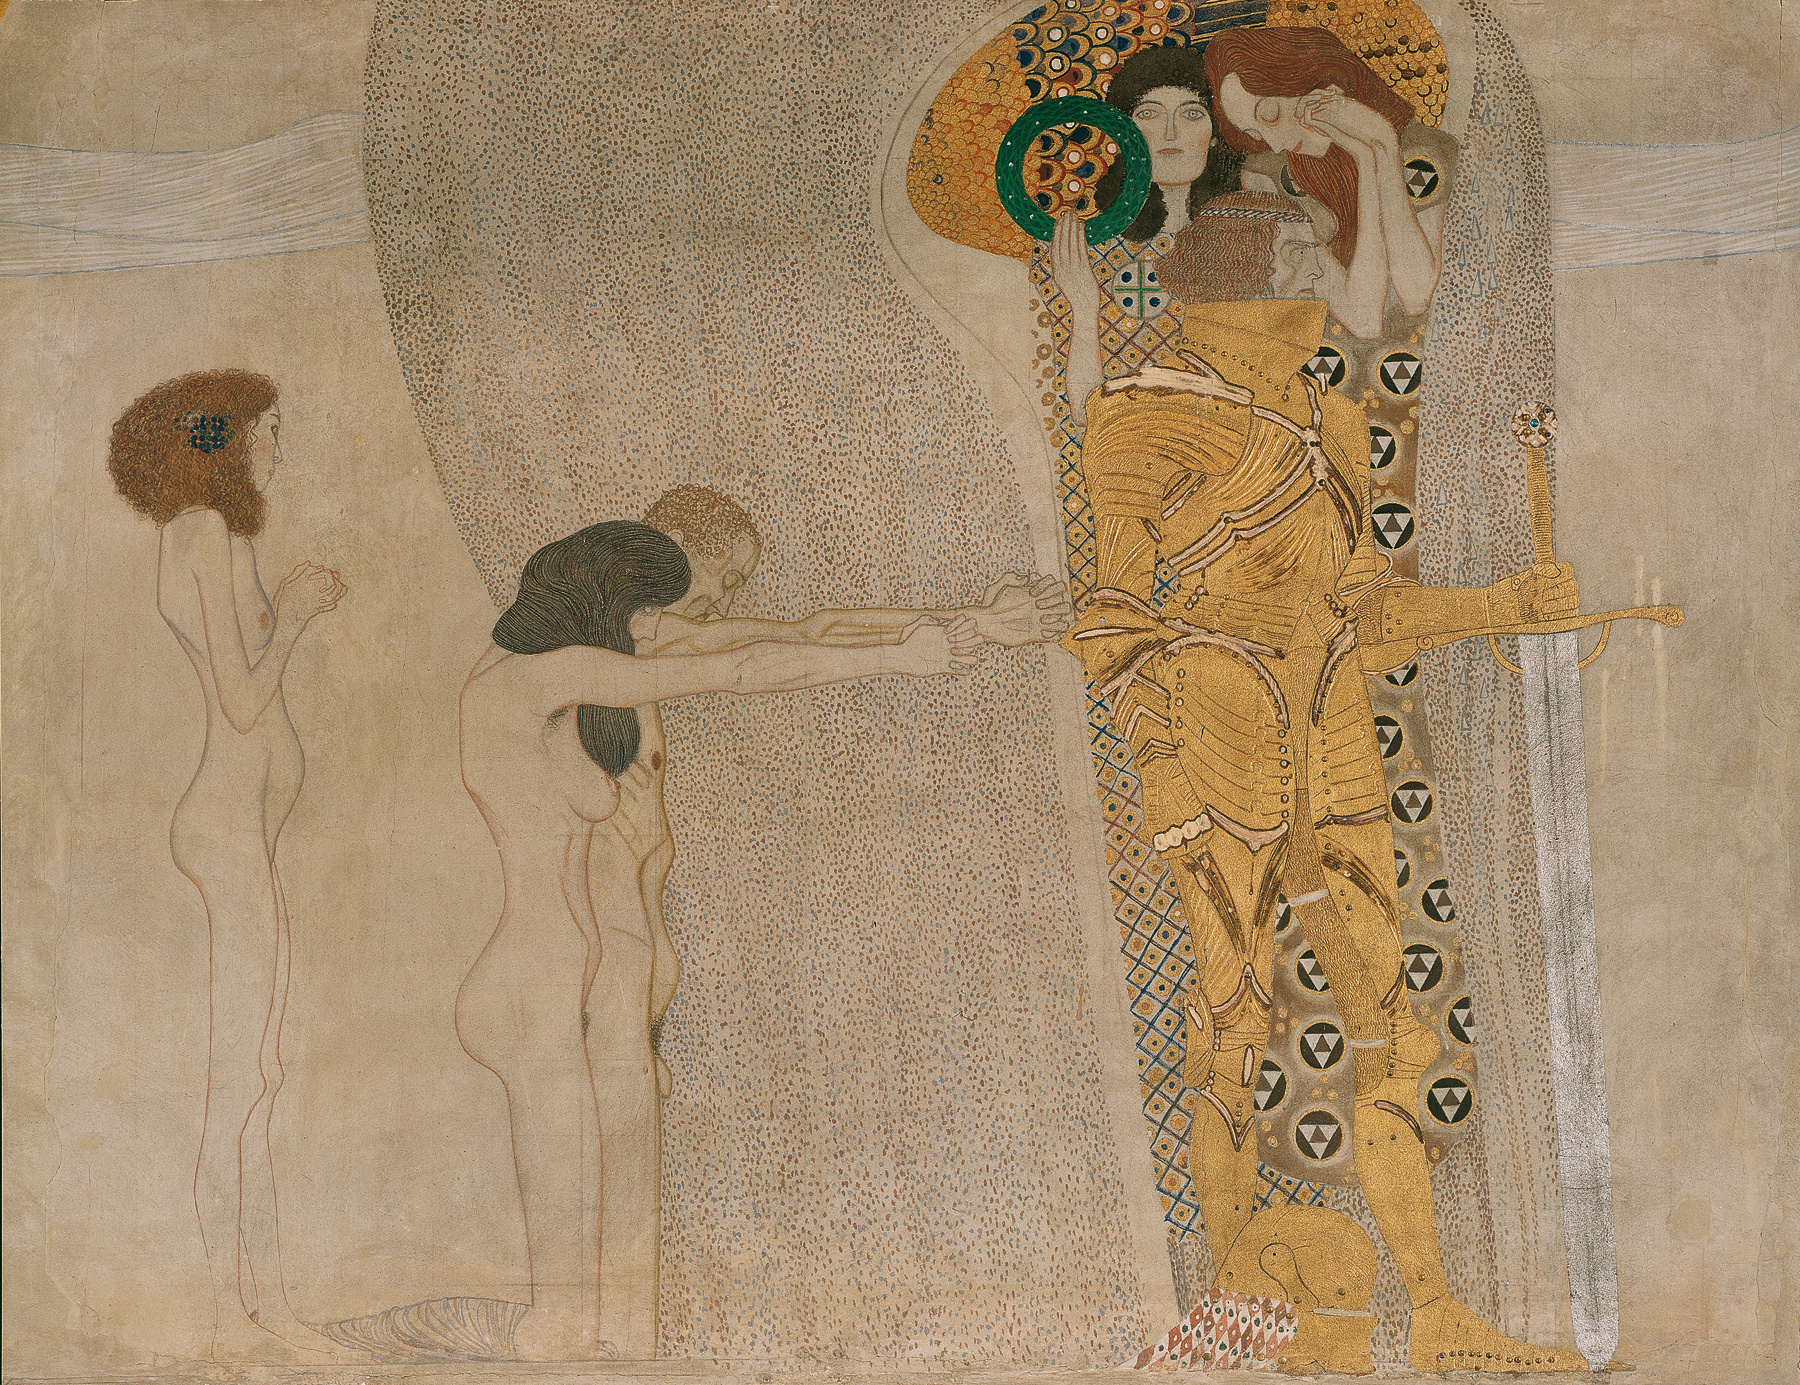 Gustav Klimt S Painting Death And Life Demonstrates Artistic Use Of